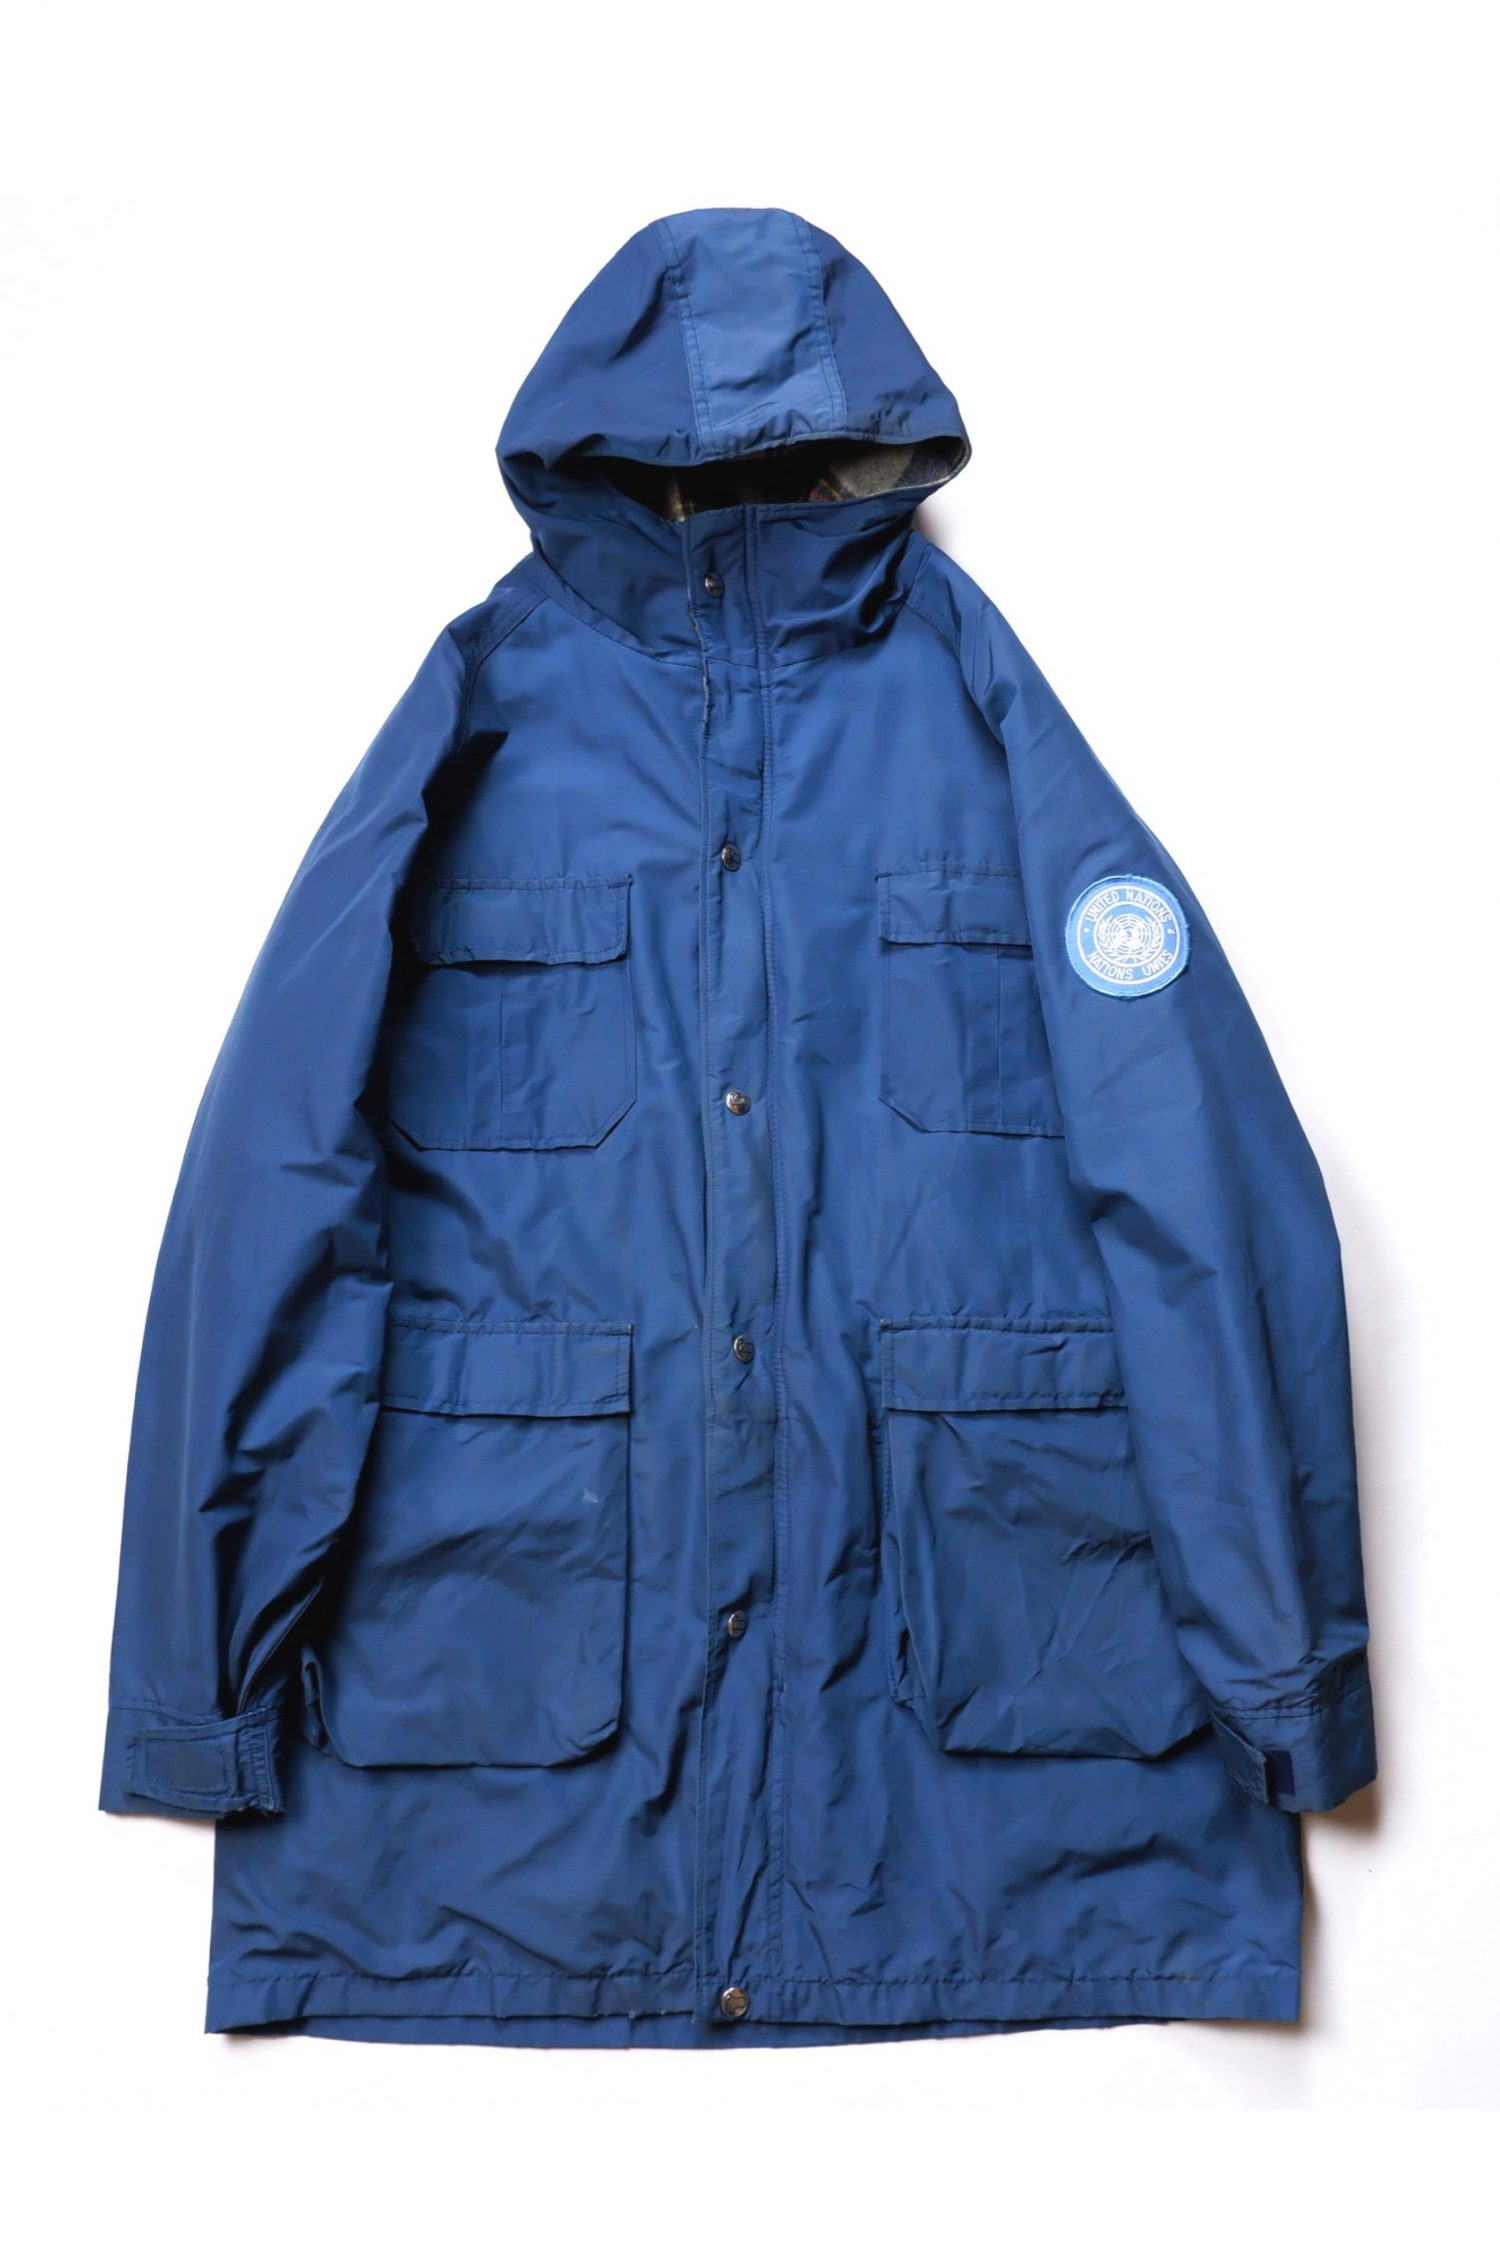 WOOLRICH Vintage Outdoor Jacket_ Made in USA_Blue-01